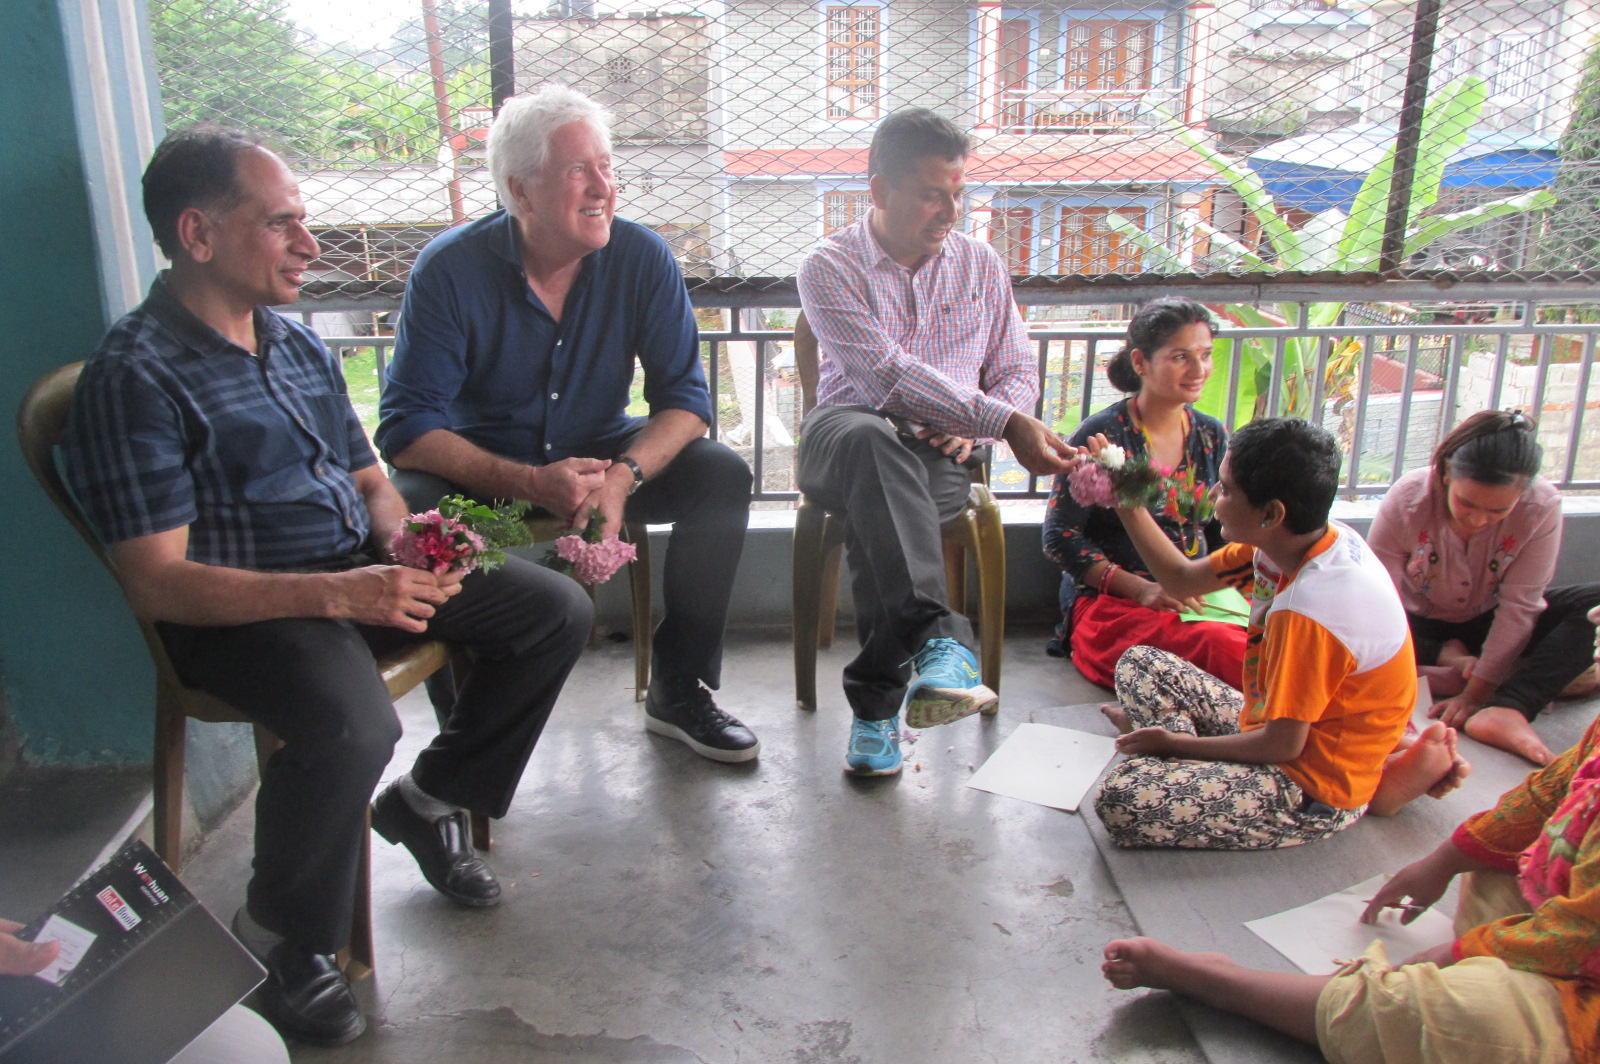 Chairman of CWS Honkong, Gordon gave a visit to KOPILA-Nepal Safe Home